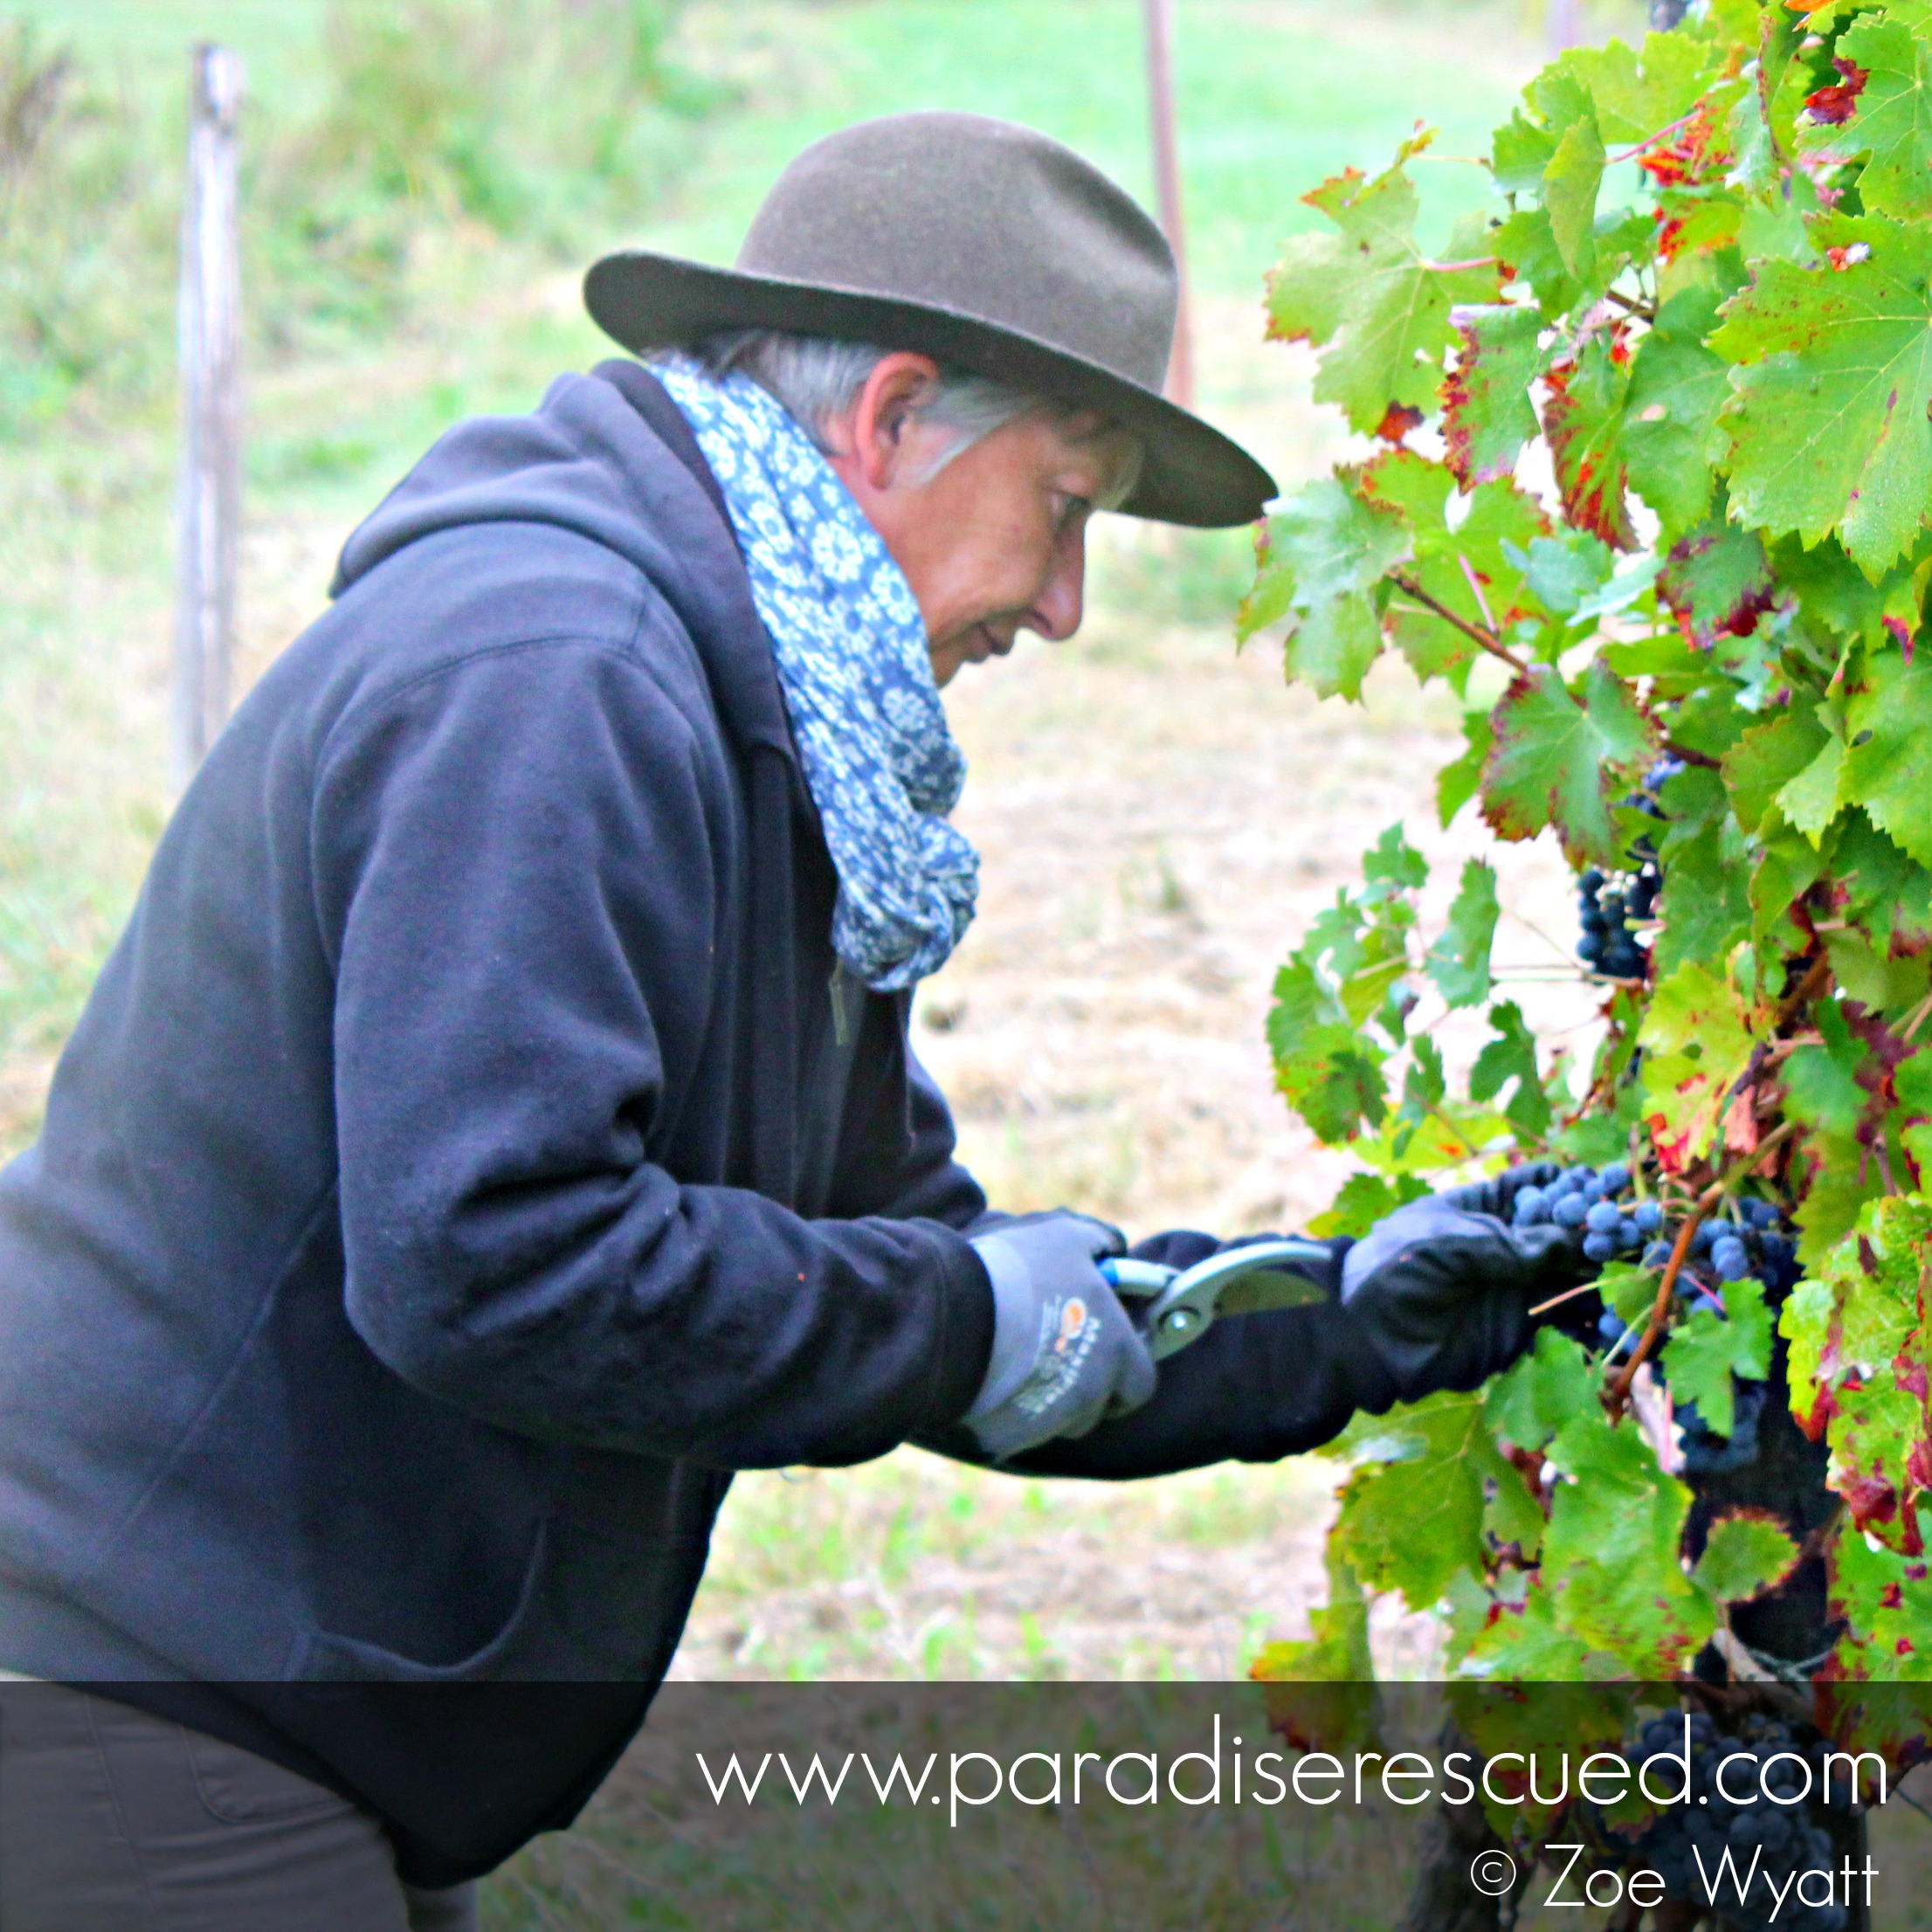 Pascale Bervas - vigneronne at Paradise Rescued Bordeaux